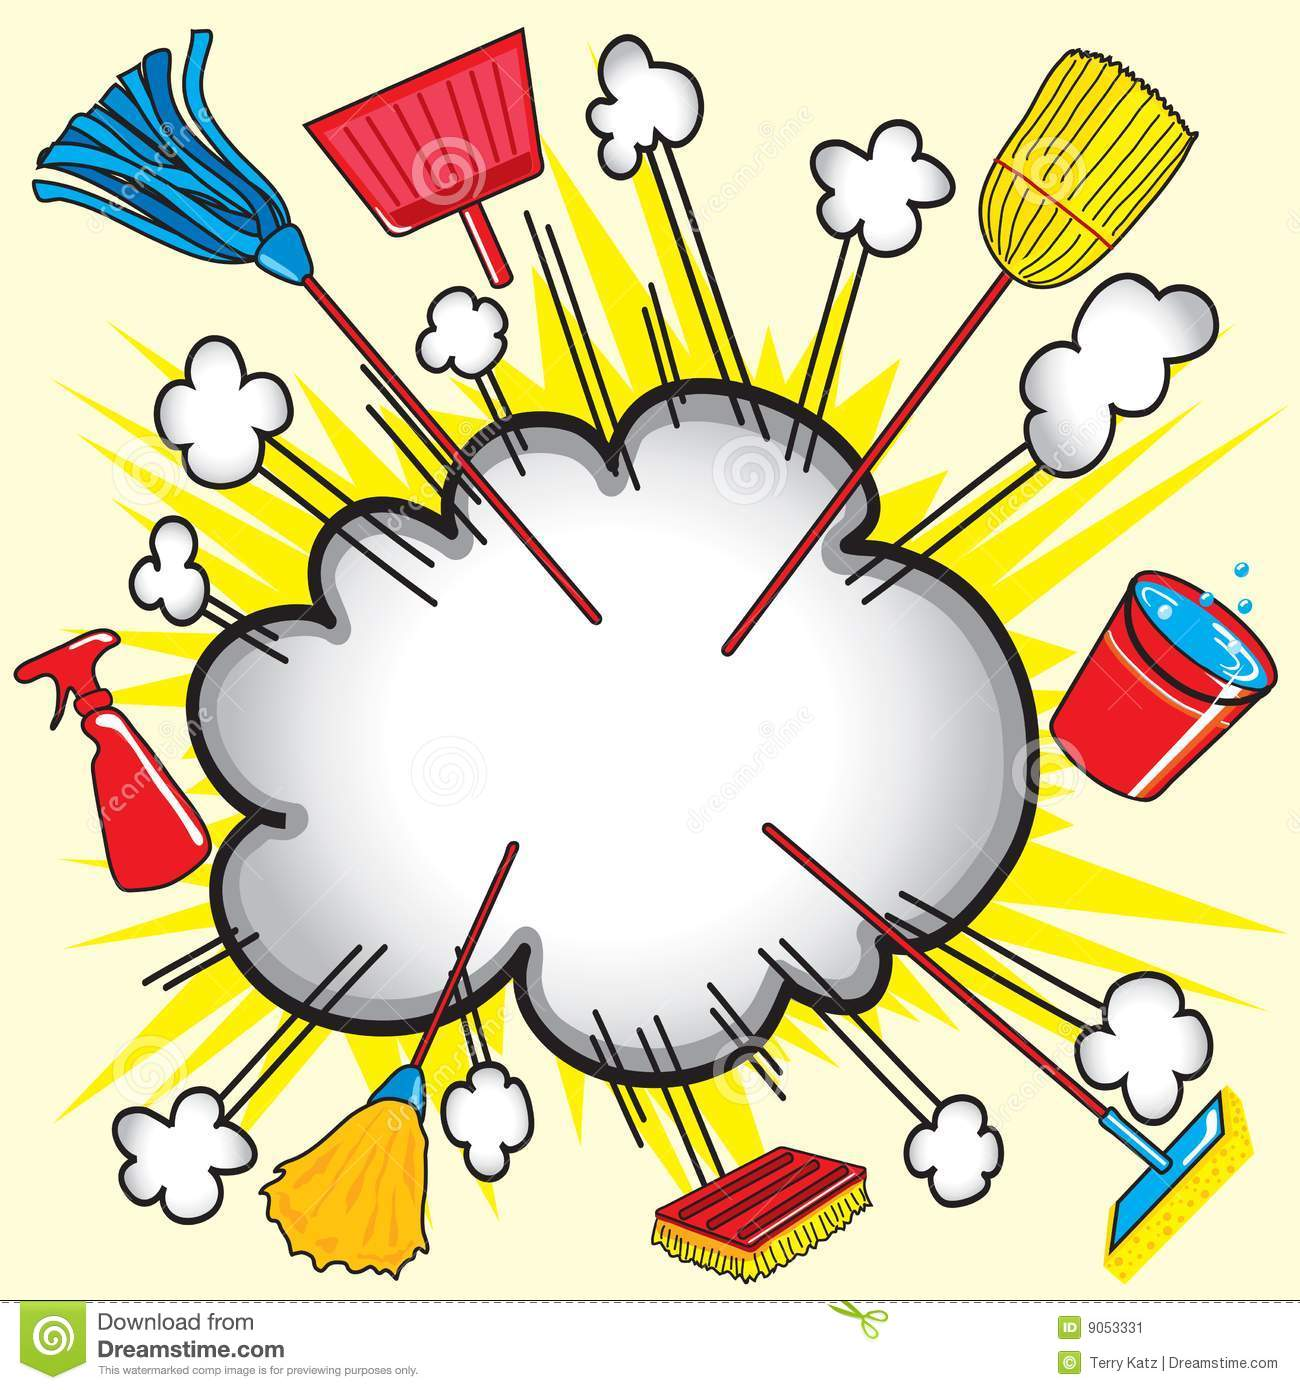 Cloud Burst Explosion With Cleaning Equipment For Business Or